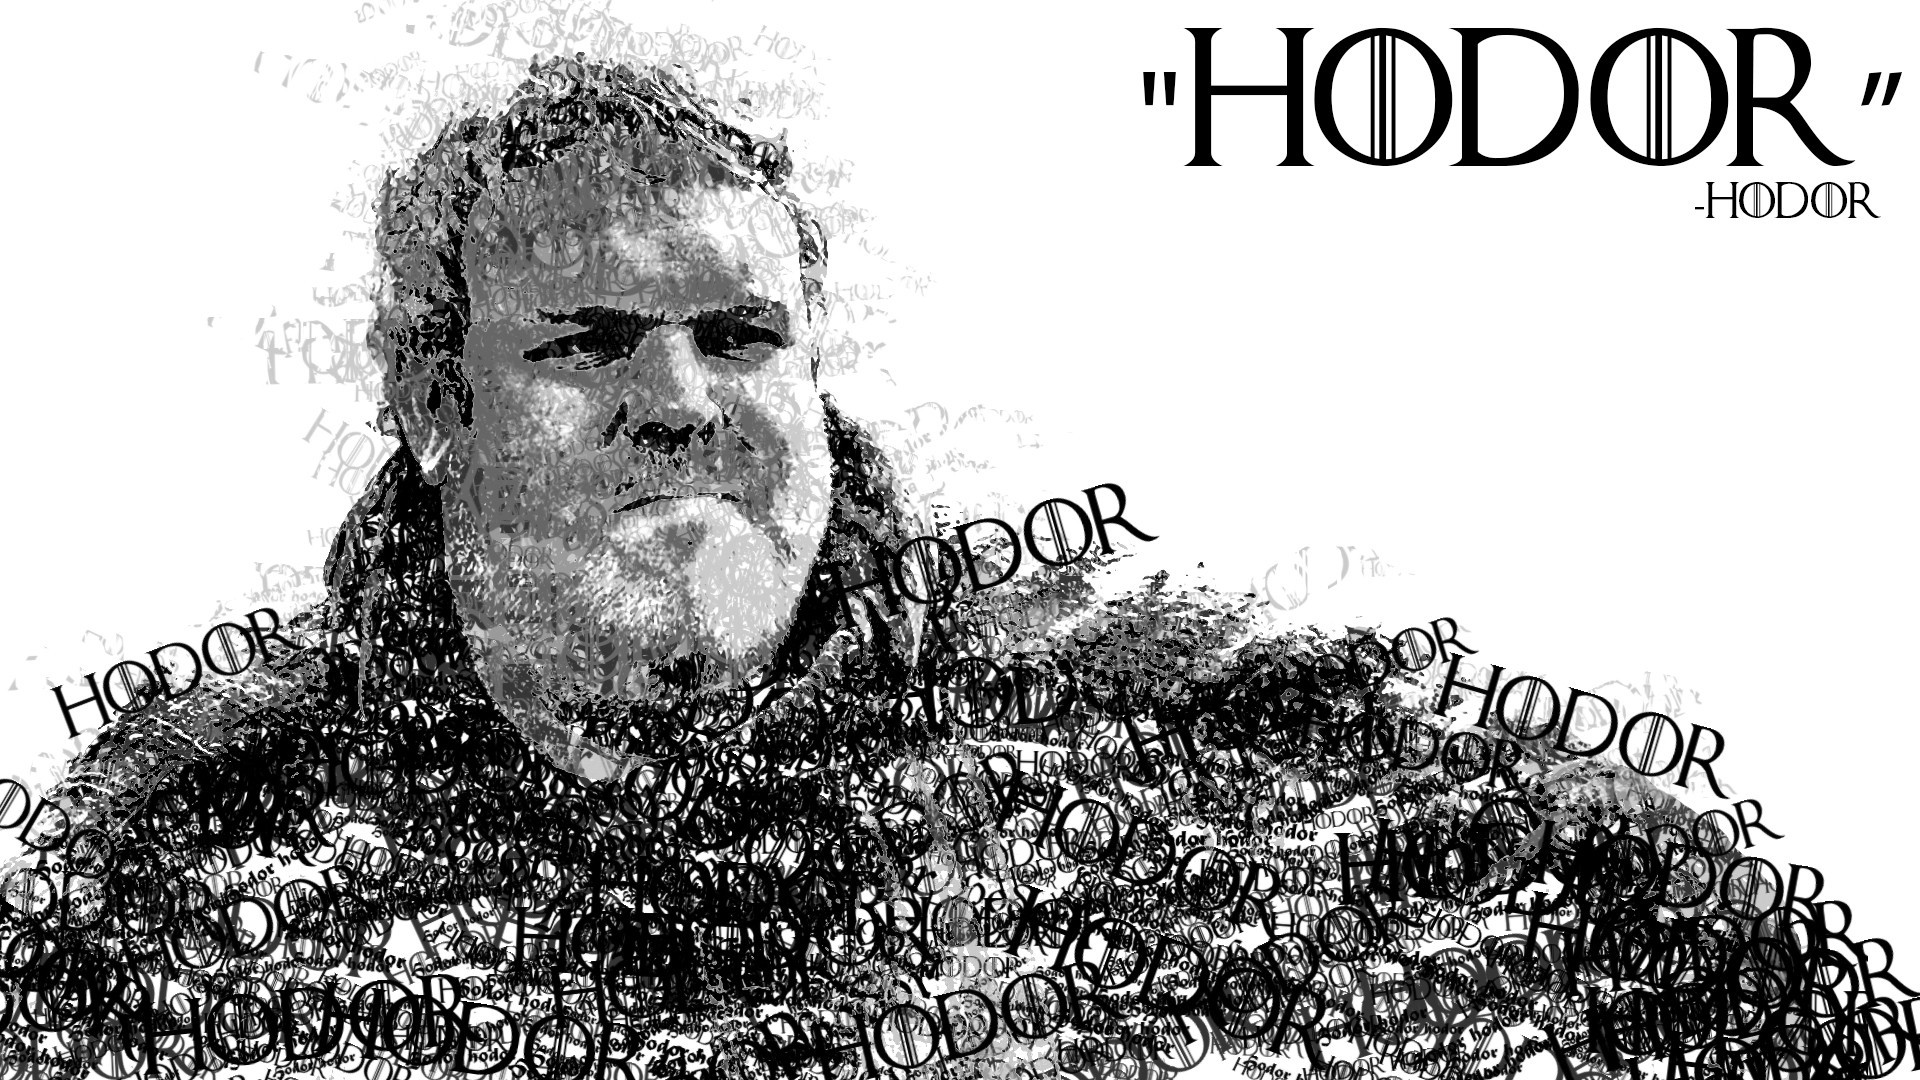 1920x1080 Game Of Thrones Hodor Quotes Text White Background ...